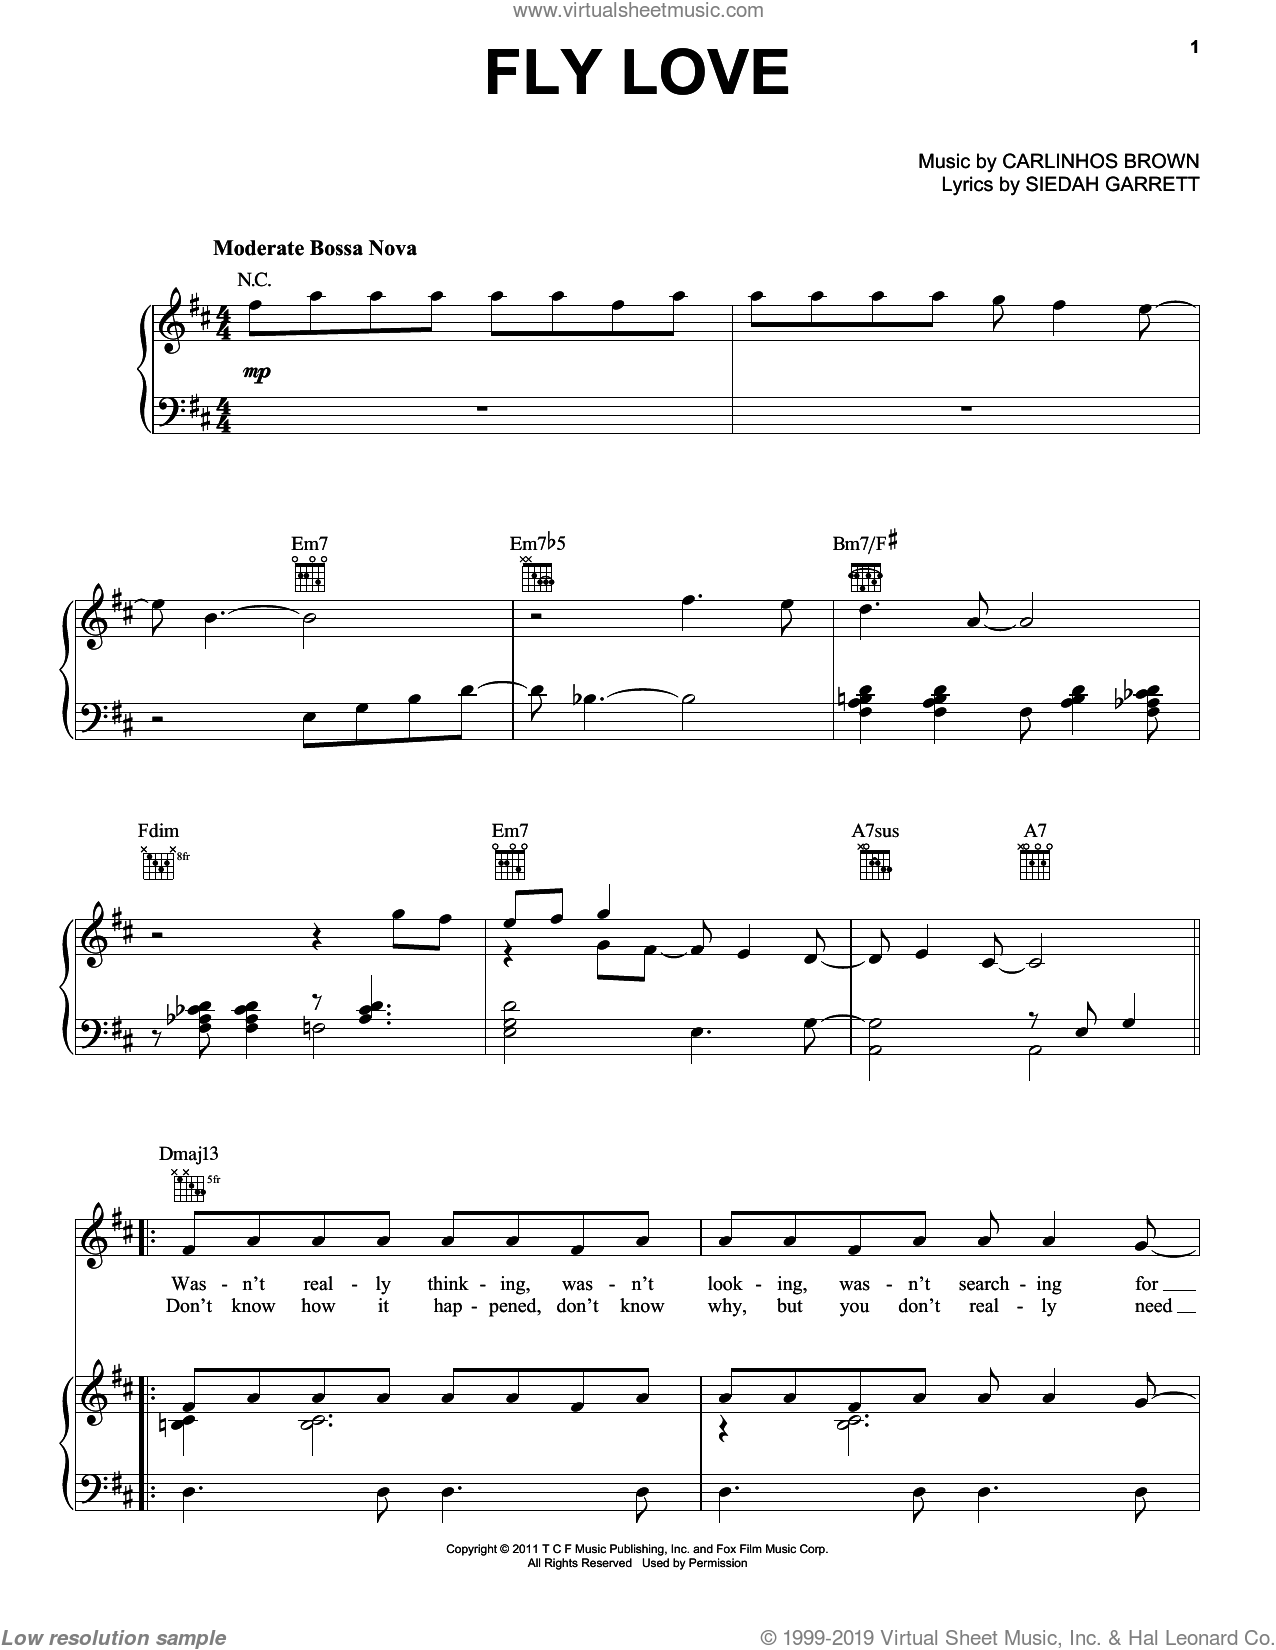 Fly Love sheet music for voice, piano or guitar by Jamie Foxx, Rio (Movie), Carlinhos Brown and Siedah Garrett, intermediate skill level